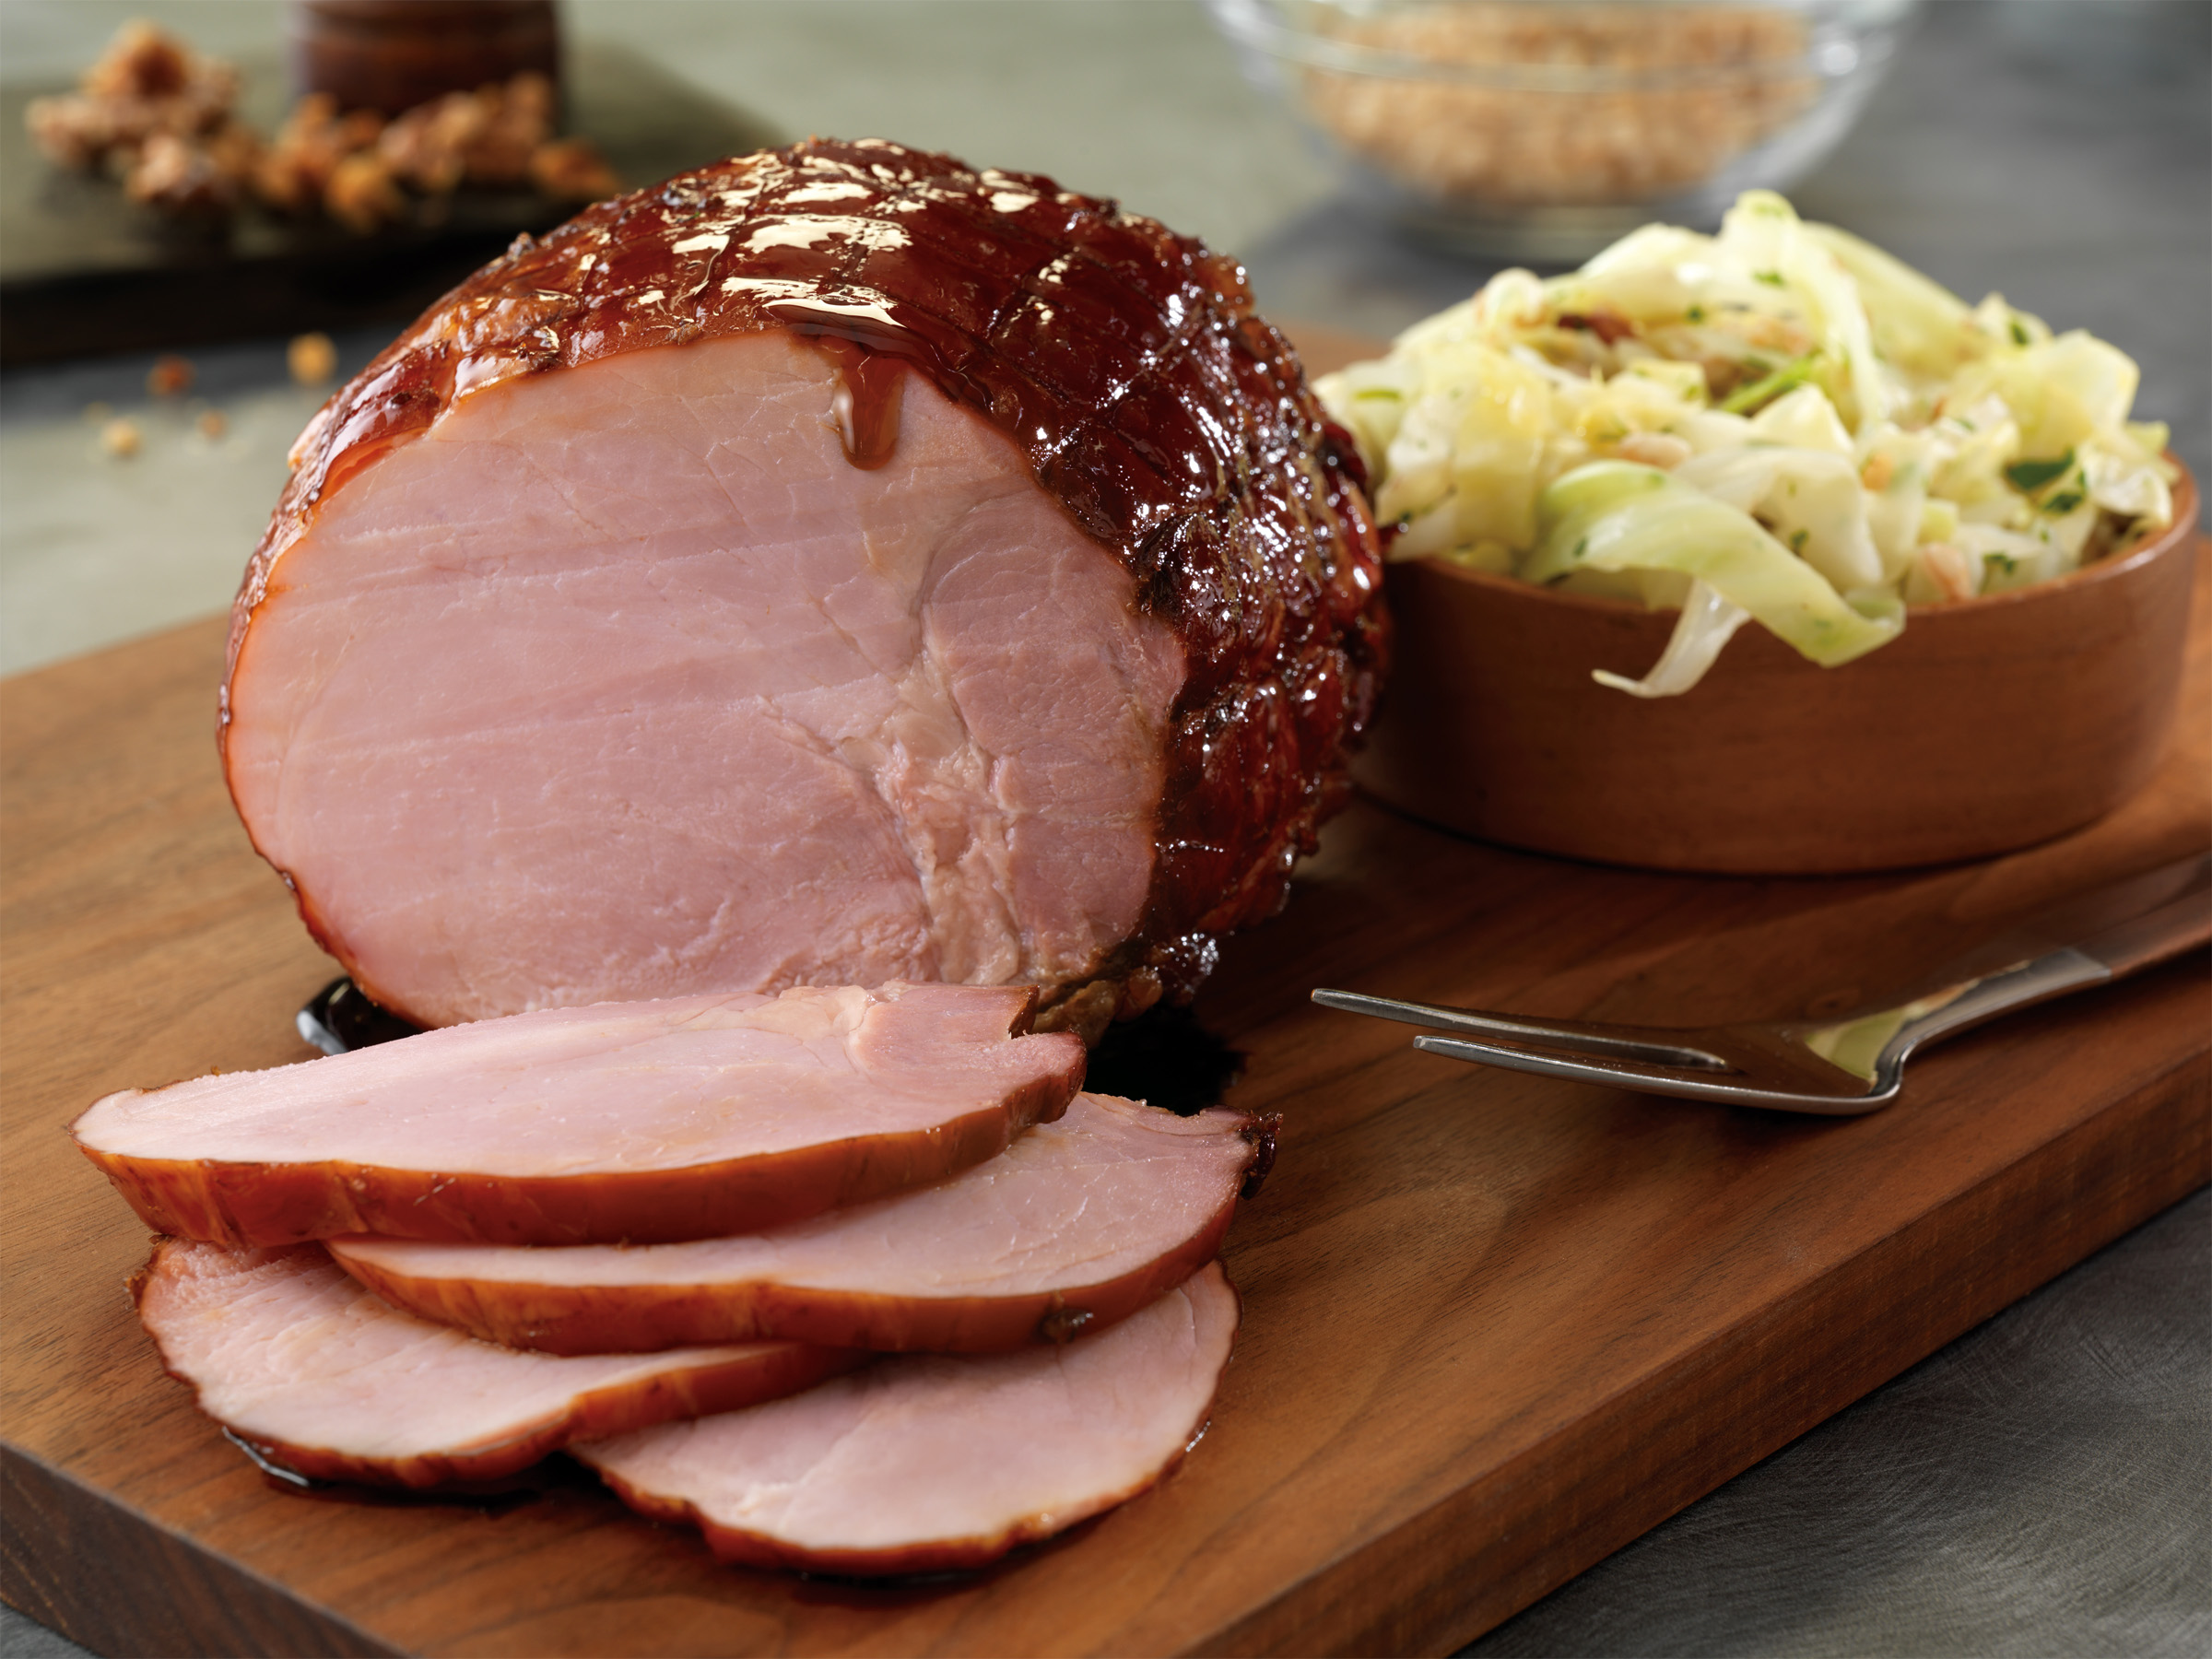 Apple+Cider+Ham+with+Molasses+Glaze+with+Warm+Cabbage%2C+Farro%2C+and+Toasted+Walnut+Slaw